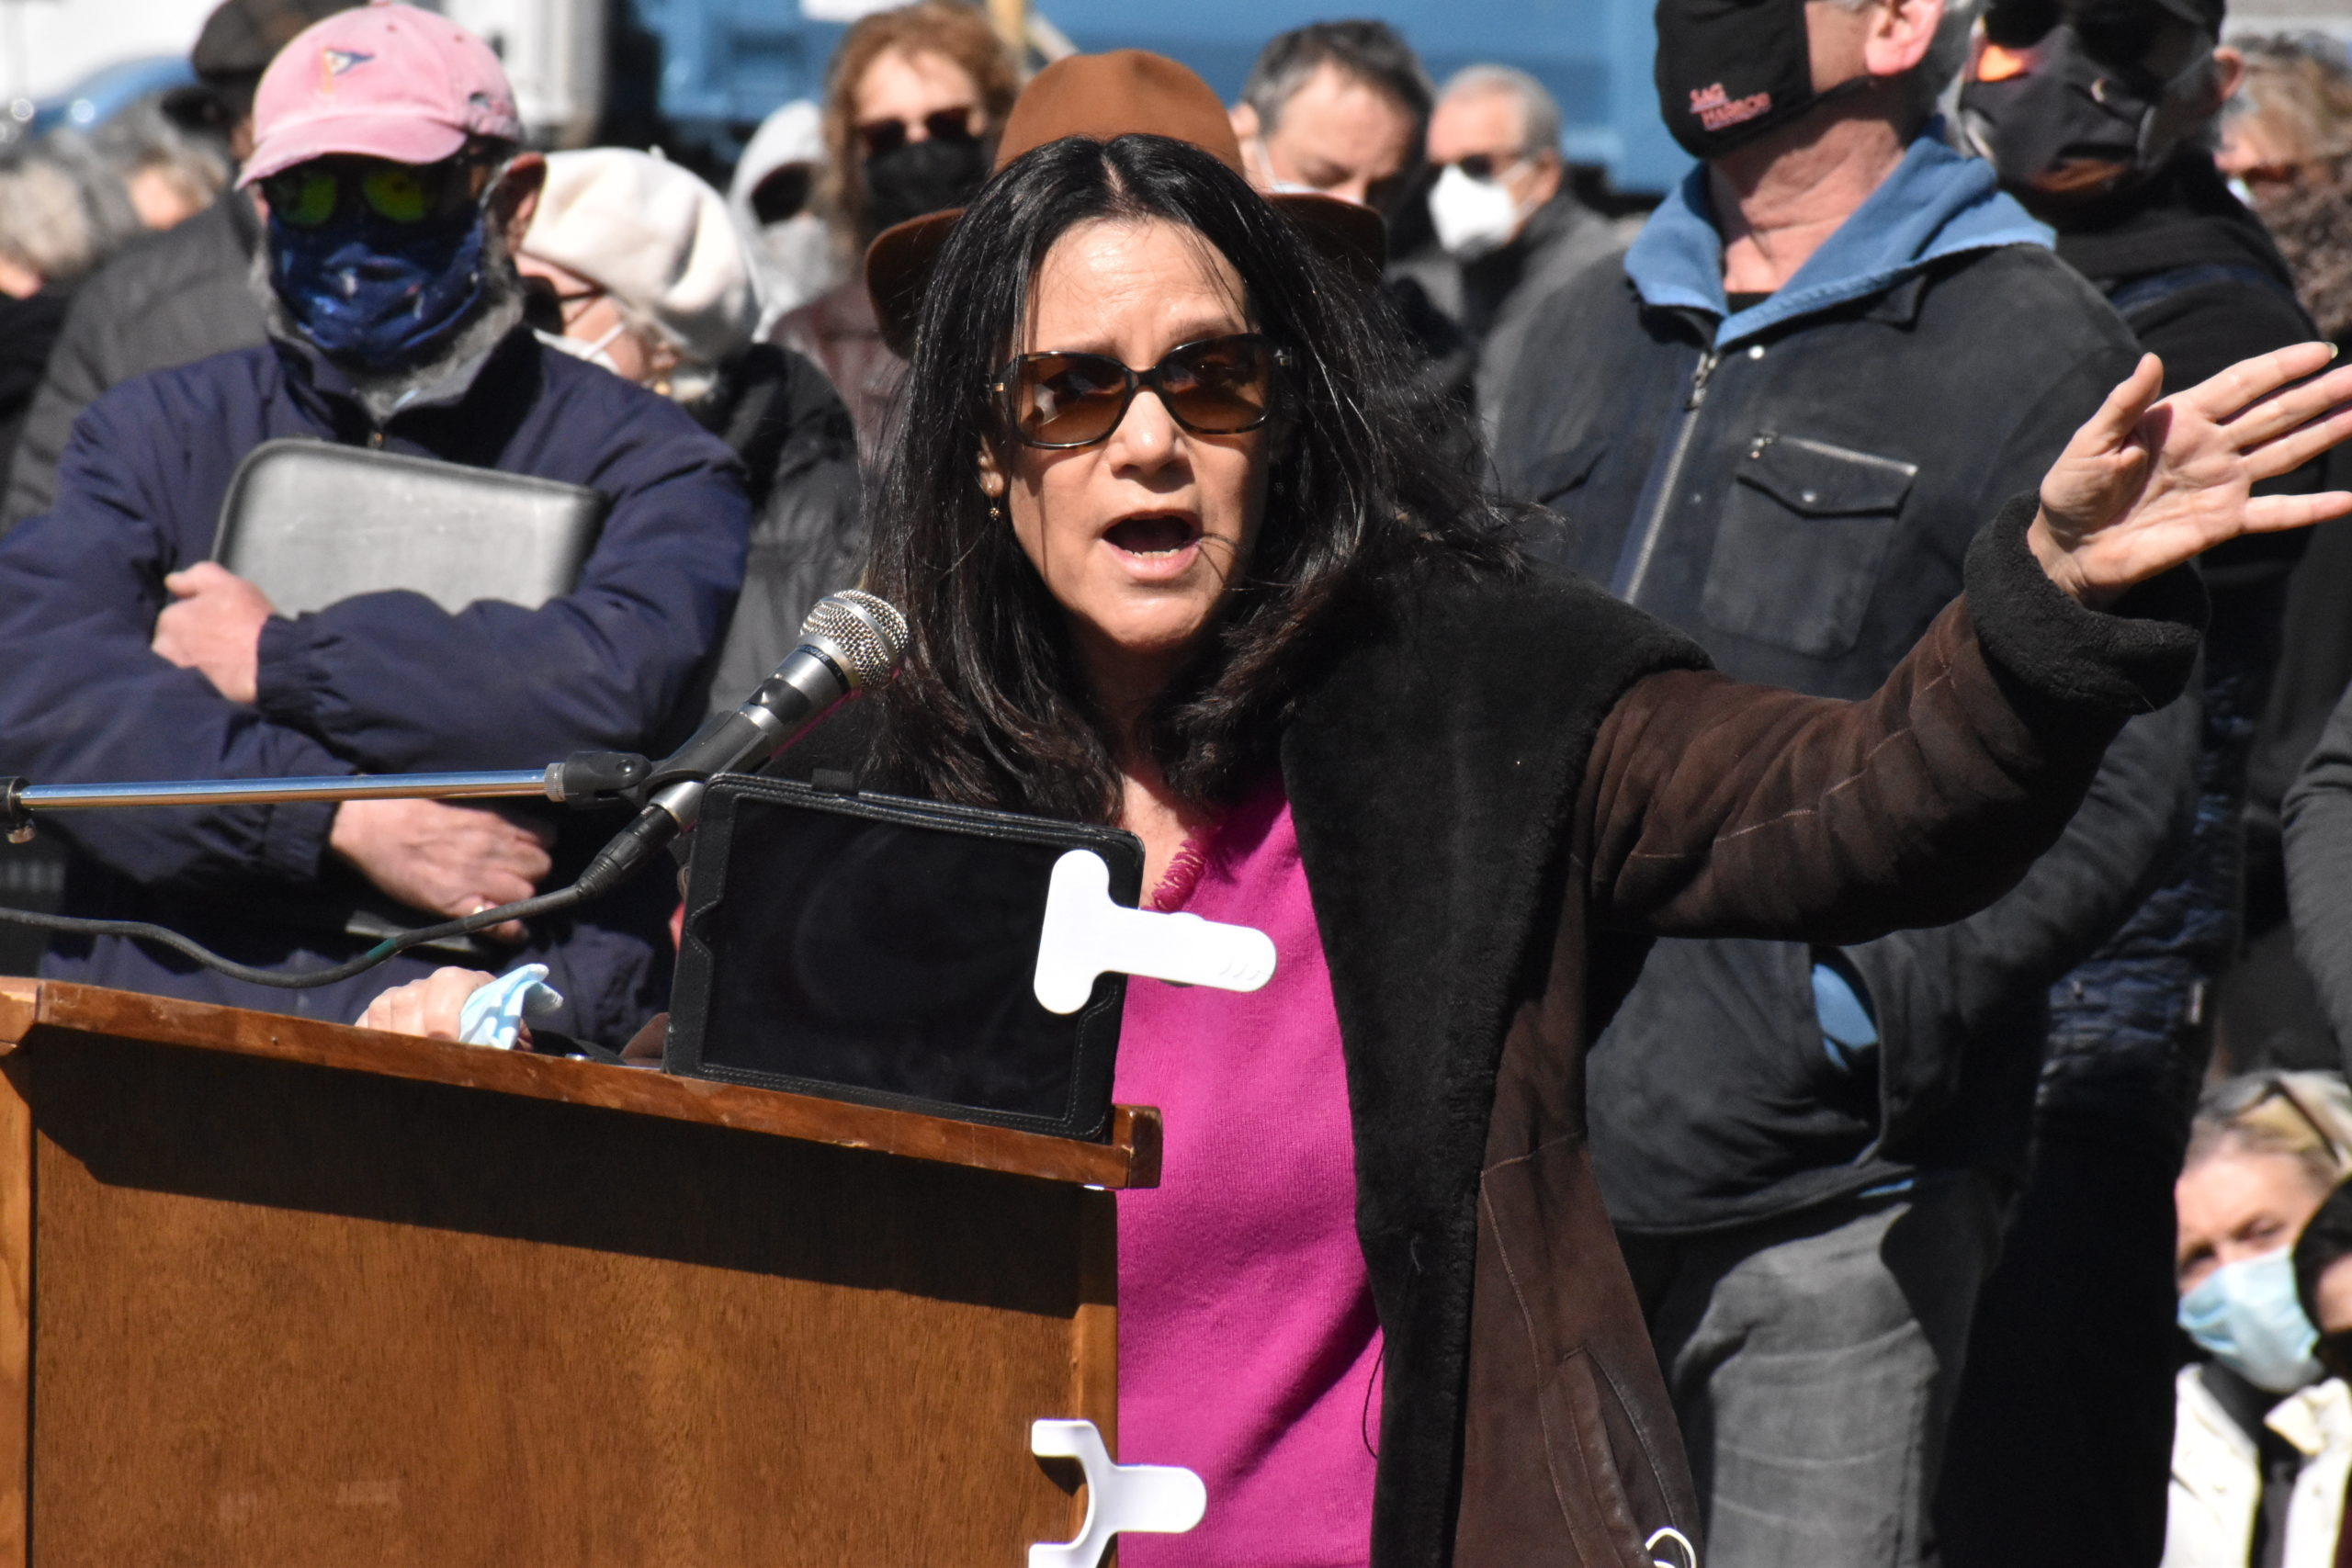 Kathryn Levy spoke forcefully against the proposed Bay Street Theater at a forum held by the Sag Harbor Village Board on Friday. STEPHEN J. KOTZ